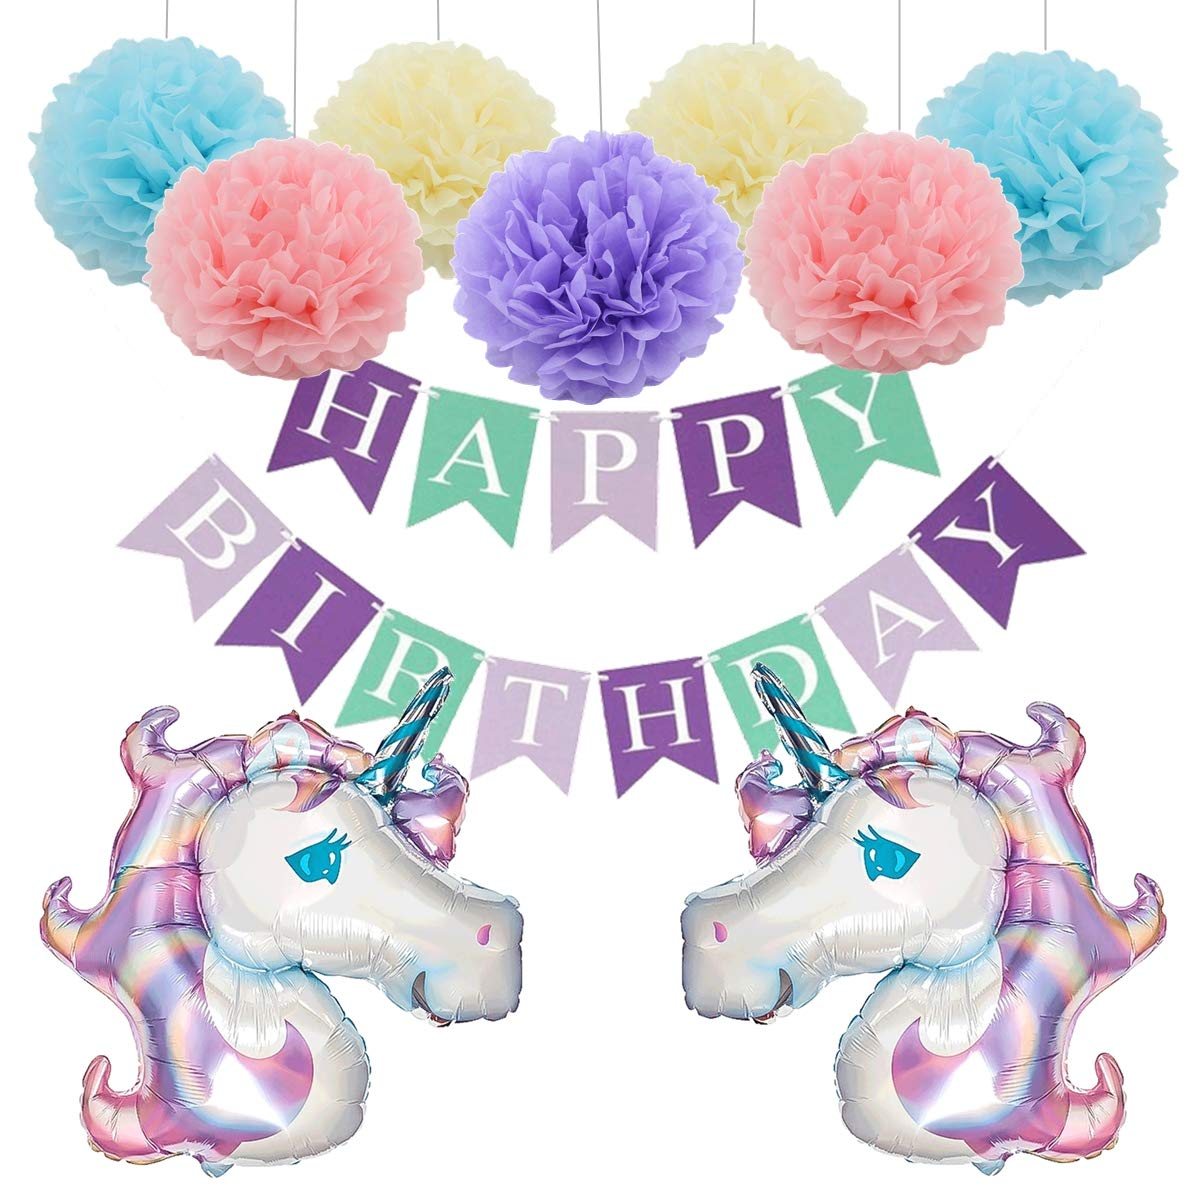 Unicorn Birthday Party Decoration Set - Tissue Paper Pom Pom, Happy Birthday Banner, Purple 42' Unicorn Foil Balloon, Party Décor Supply Kit